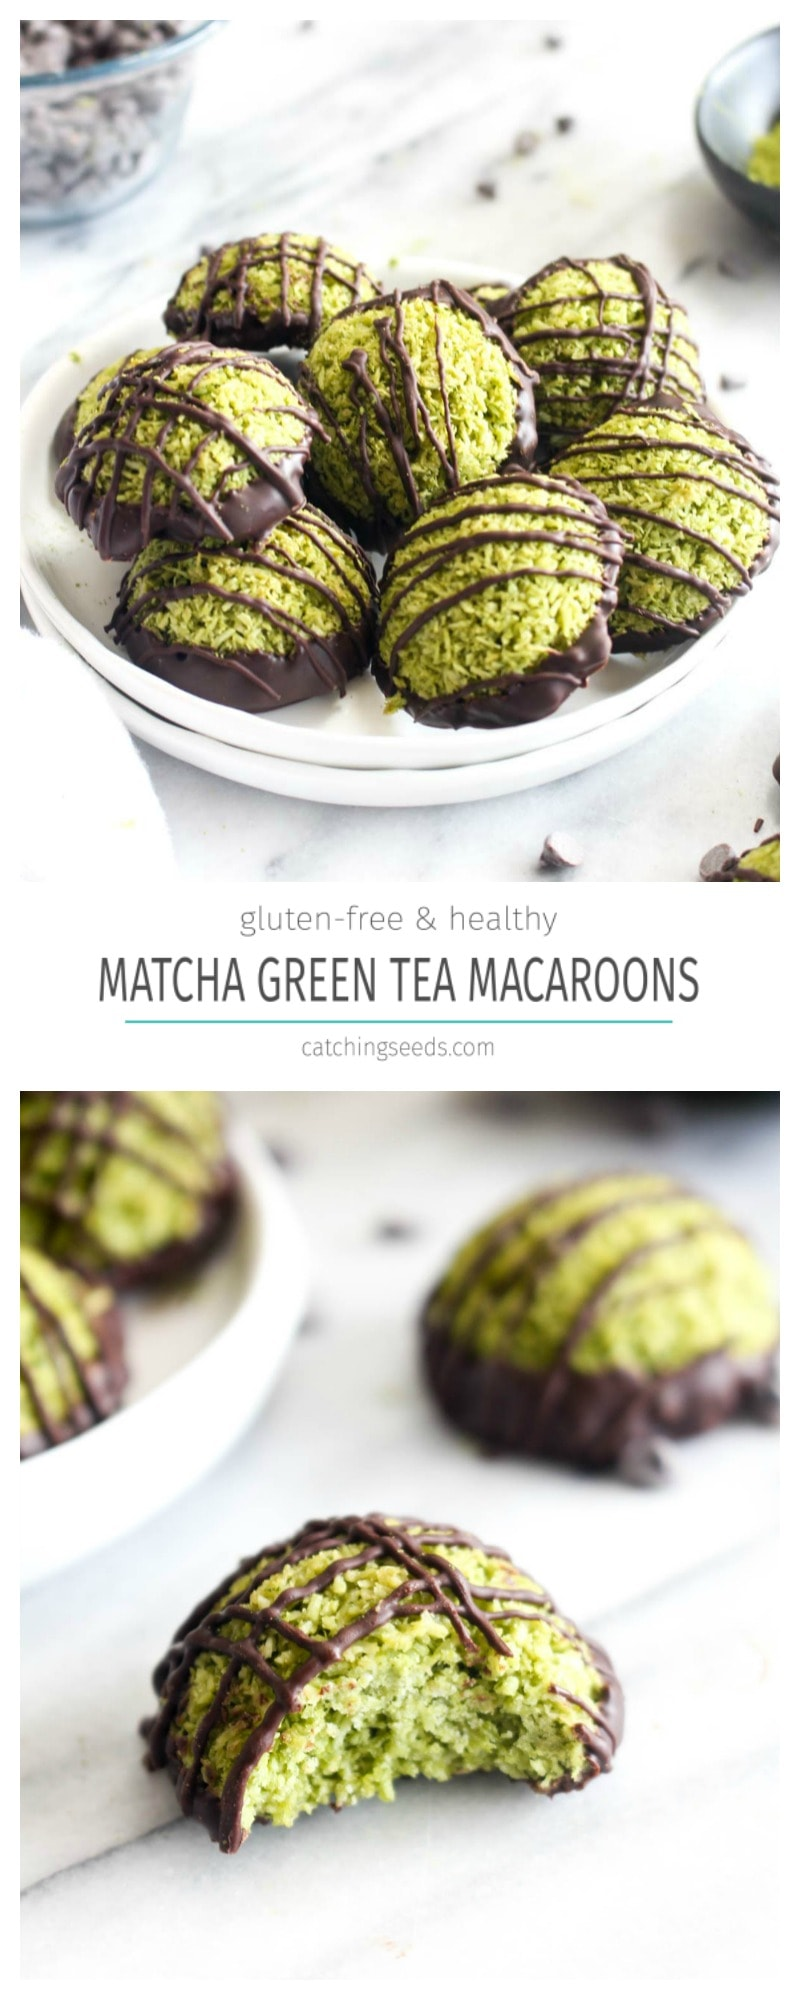 These Matcha Green Tea Macaroons are bursting with coconut and coated in rich dark chocolate. These cookies can be made in 30 minutes and are a gluten free healthy treat! | CatchingSeeds.com